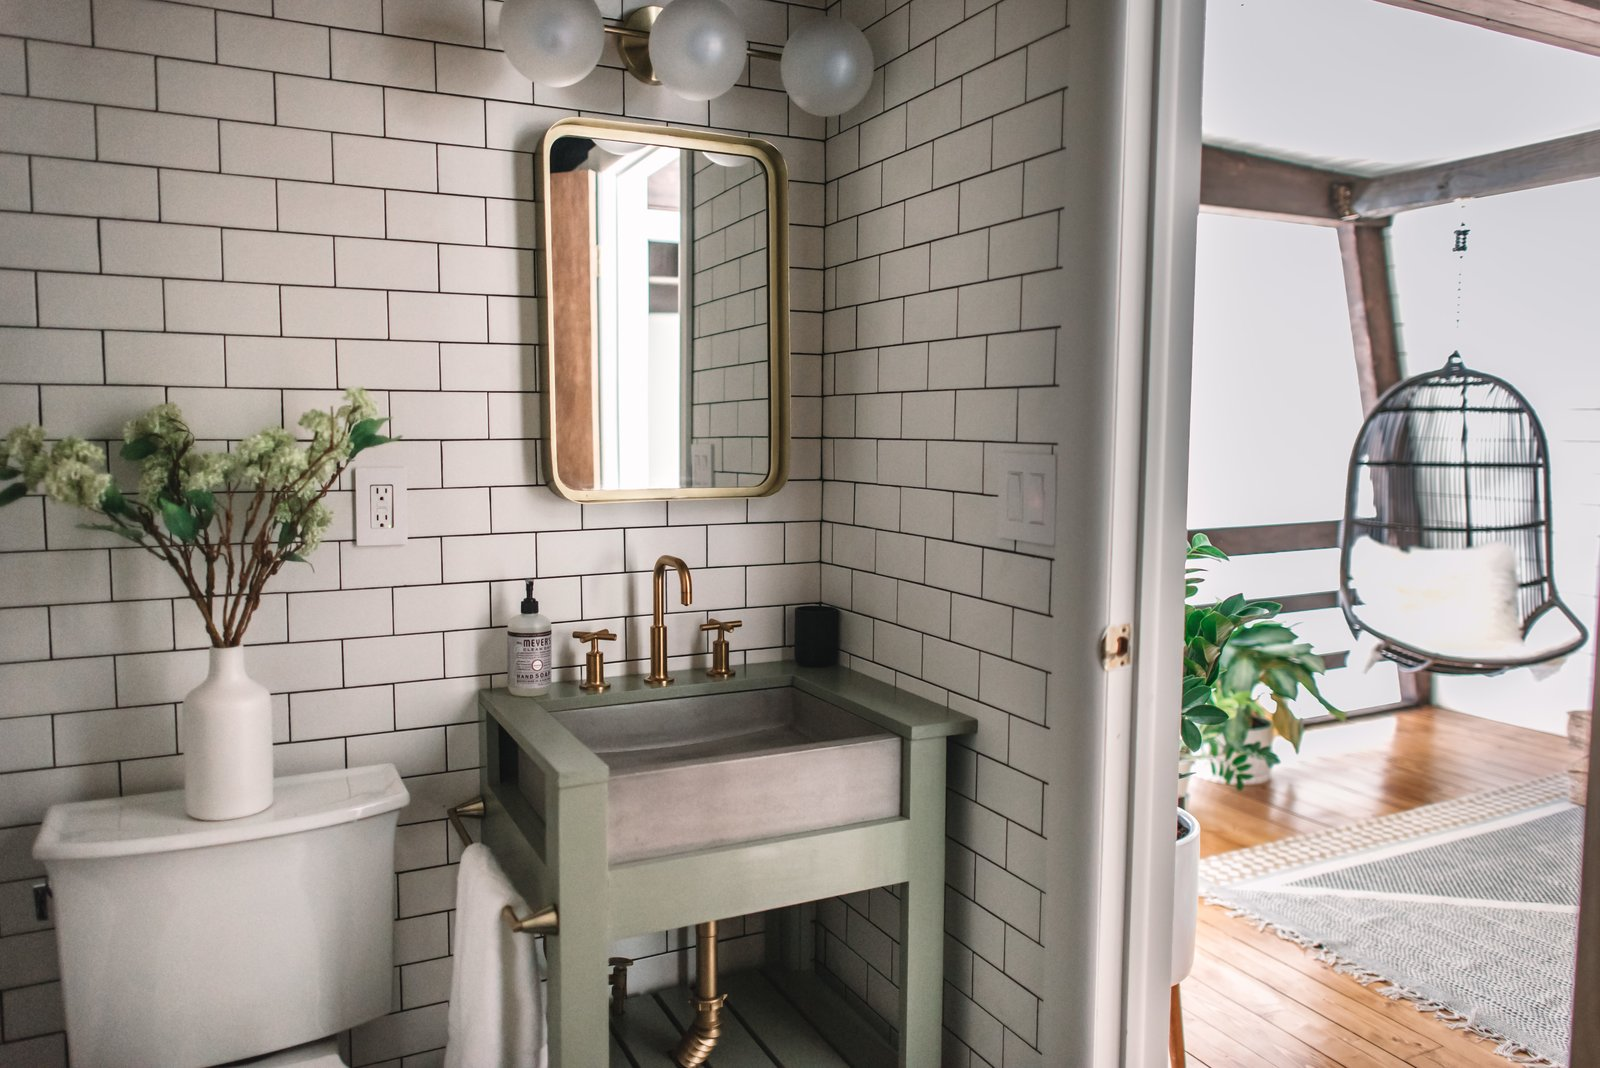 Bath Room, Two Piece Toilet, Subway Tile Wall, Wall Lighting, and Pedestal Sink A guest bathroom is located near the top of the stairs.  Photo 26 of 26 in Budget Breakdown: Weekend DIYers Renovate a Dated Catskills Retreat For $201K